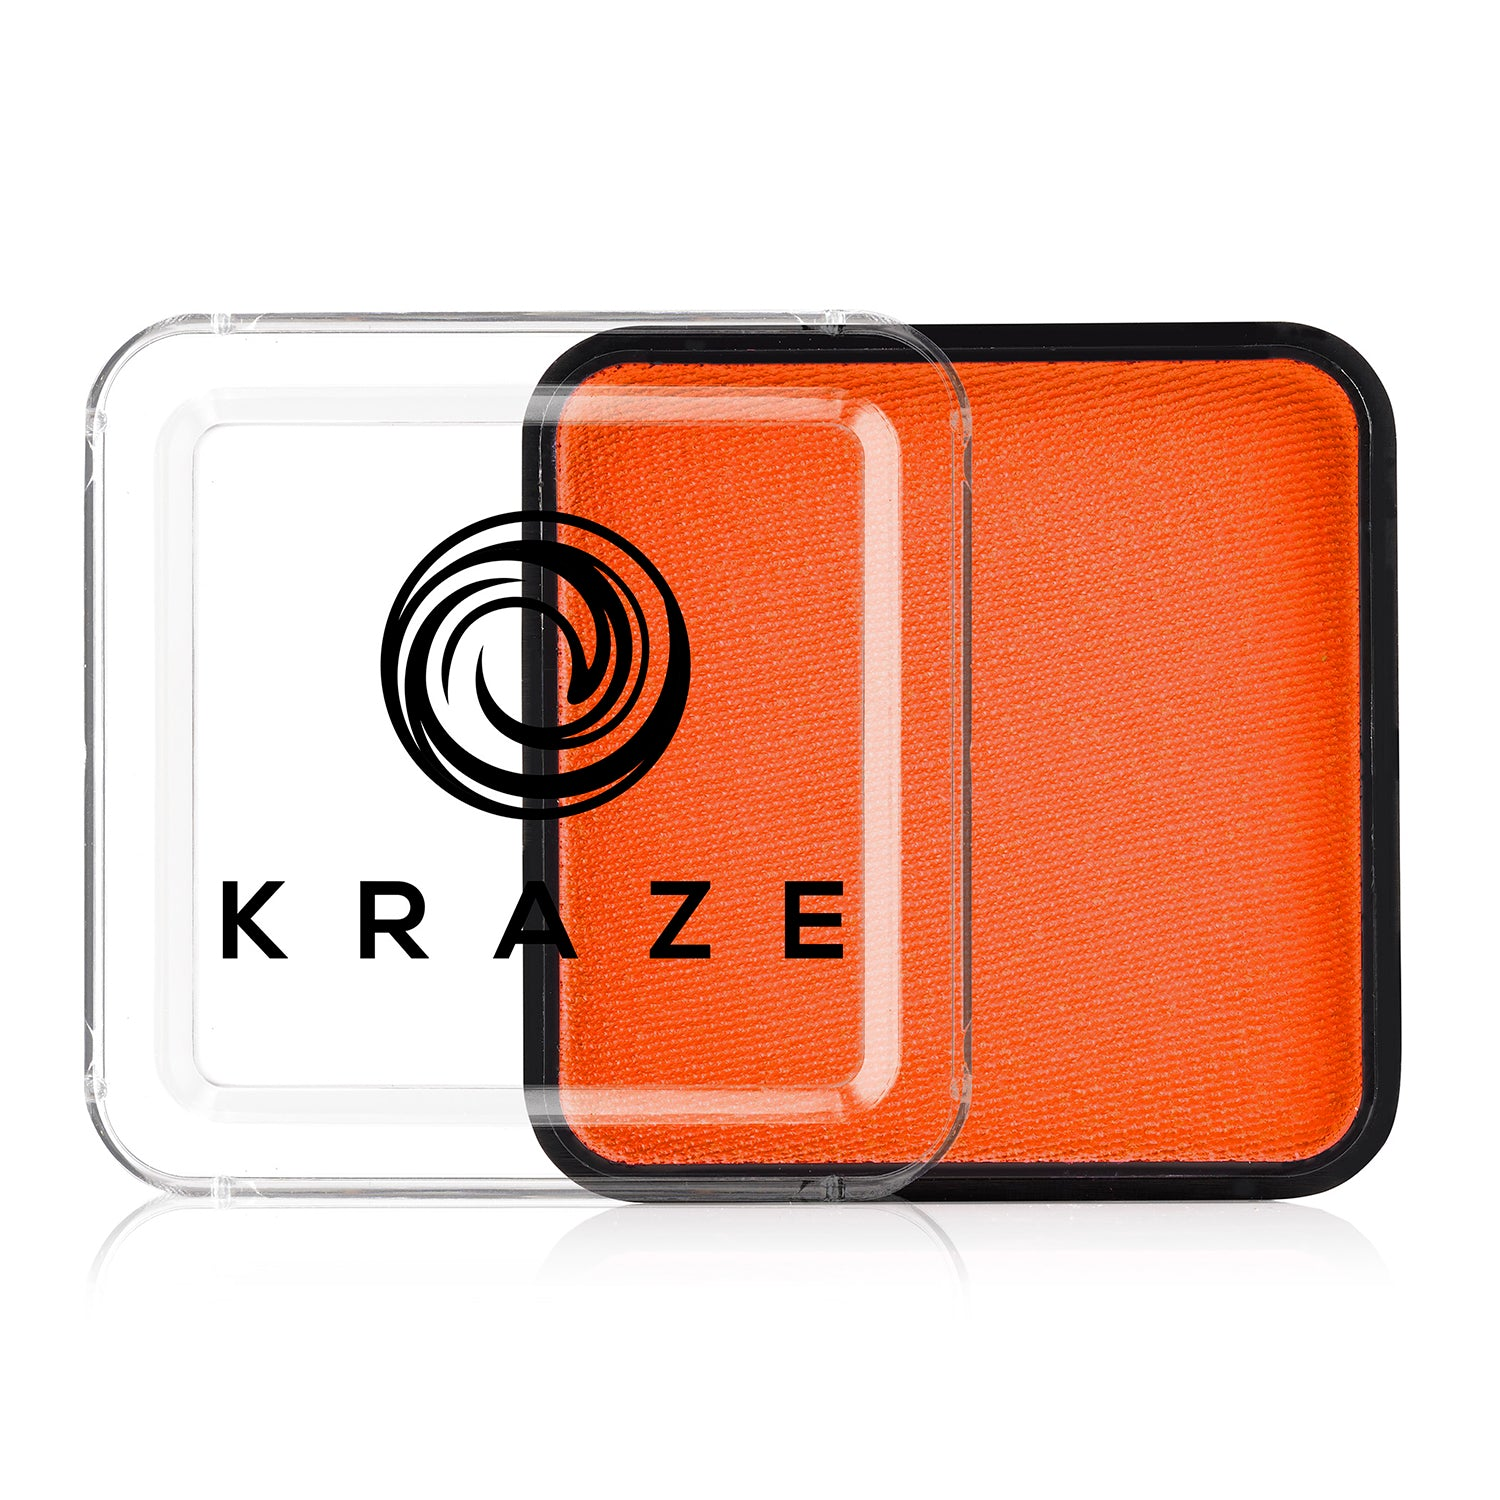 Kraze FX Face Paint - 25 gm - Orange